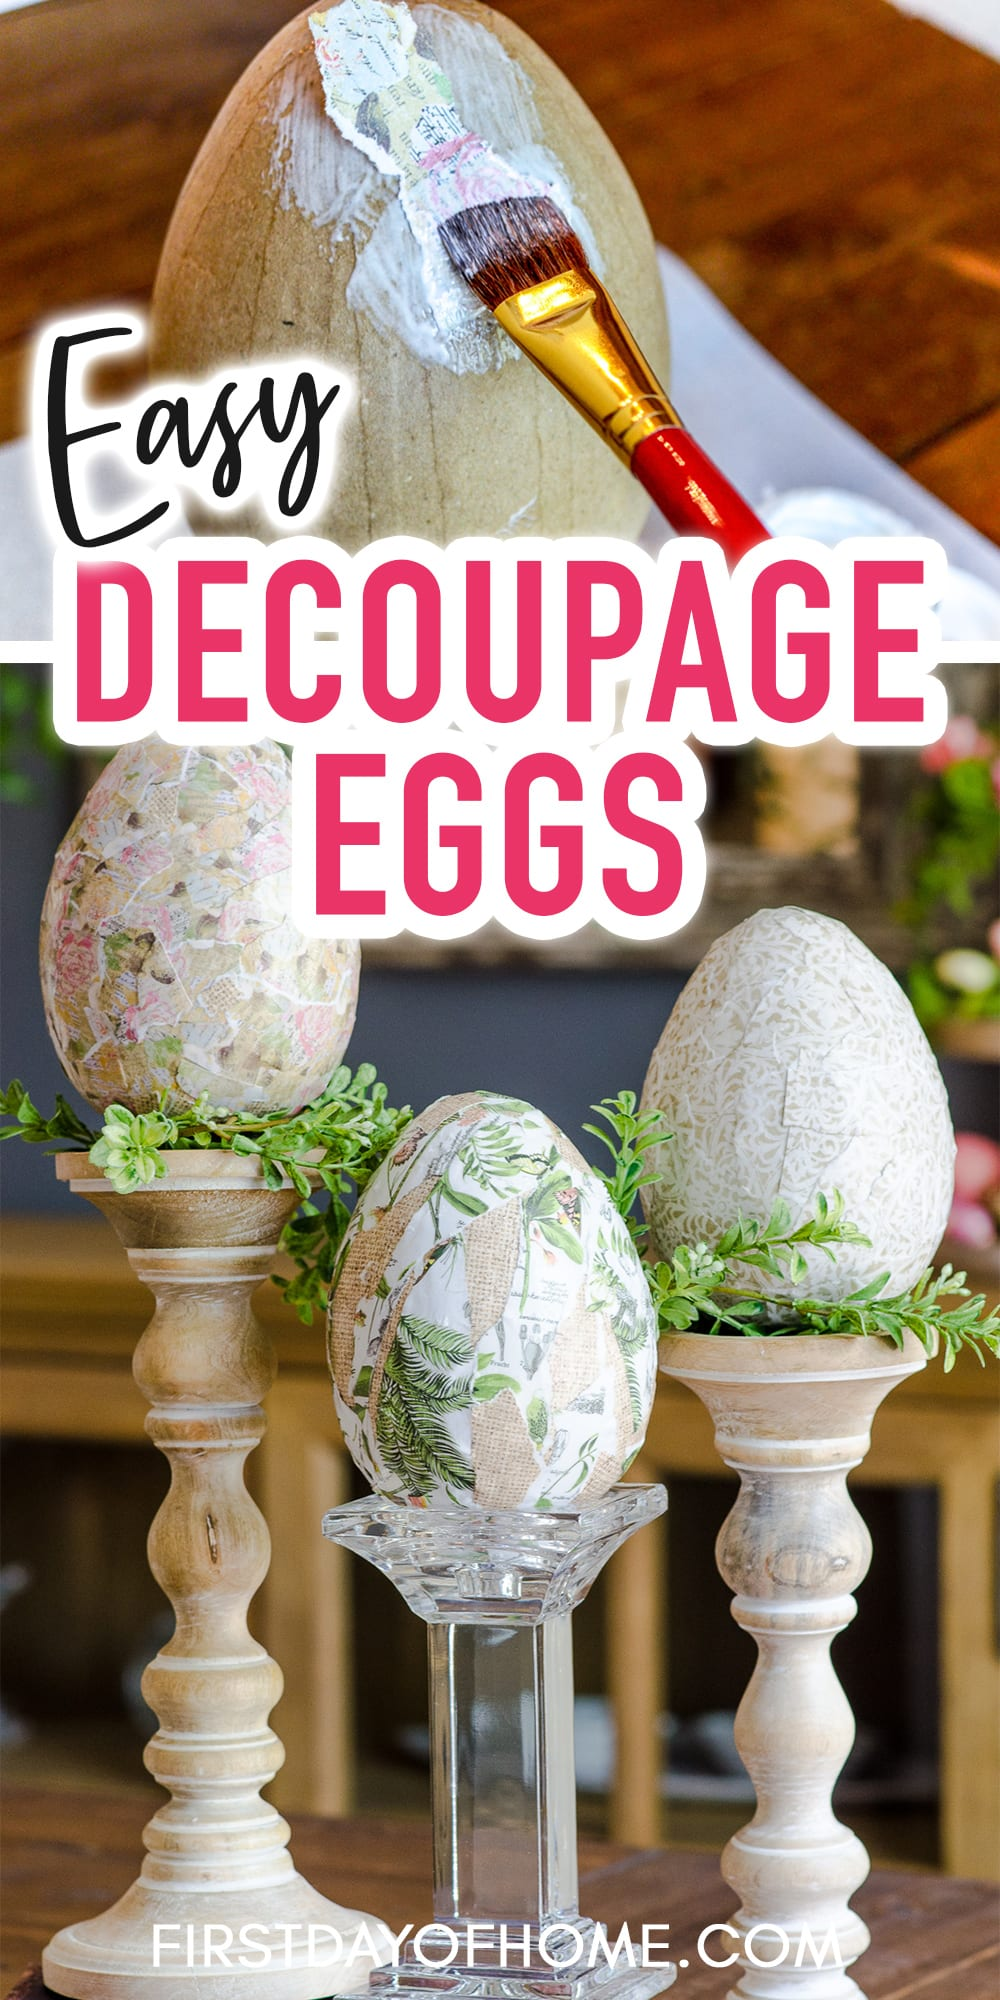 """Decorated Easter eggs using scrapbook paper and Mod Podge with text overlay reading """"Easy Decoupage Eggs"""""""